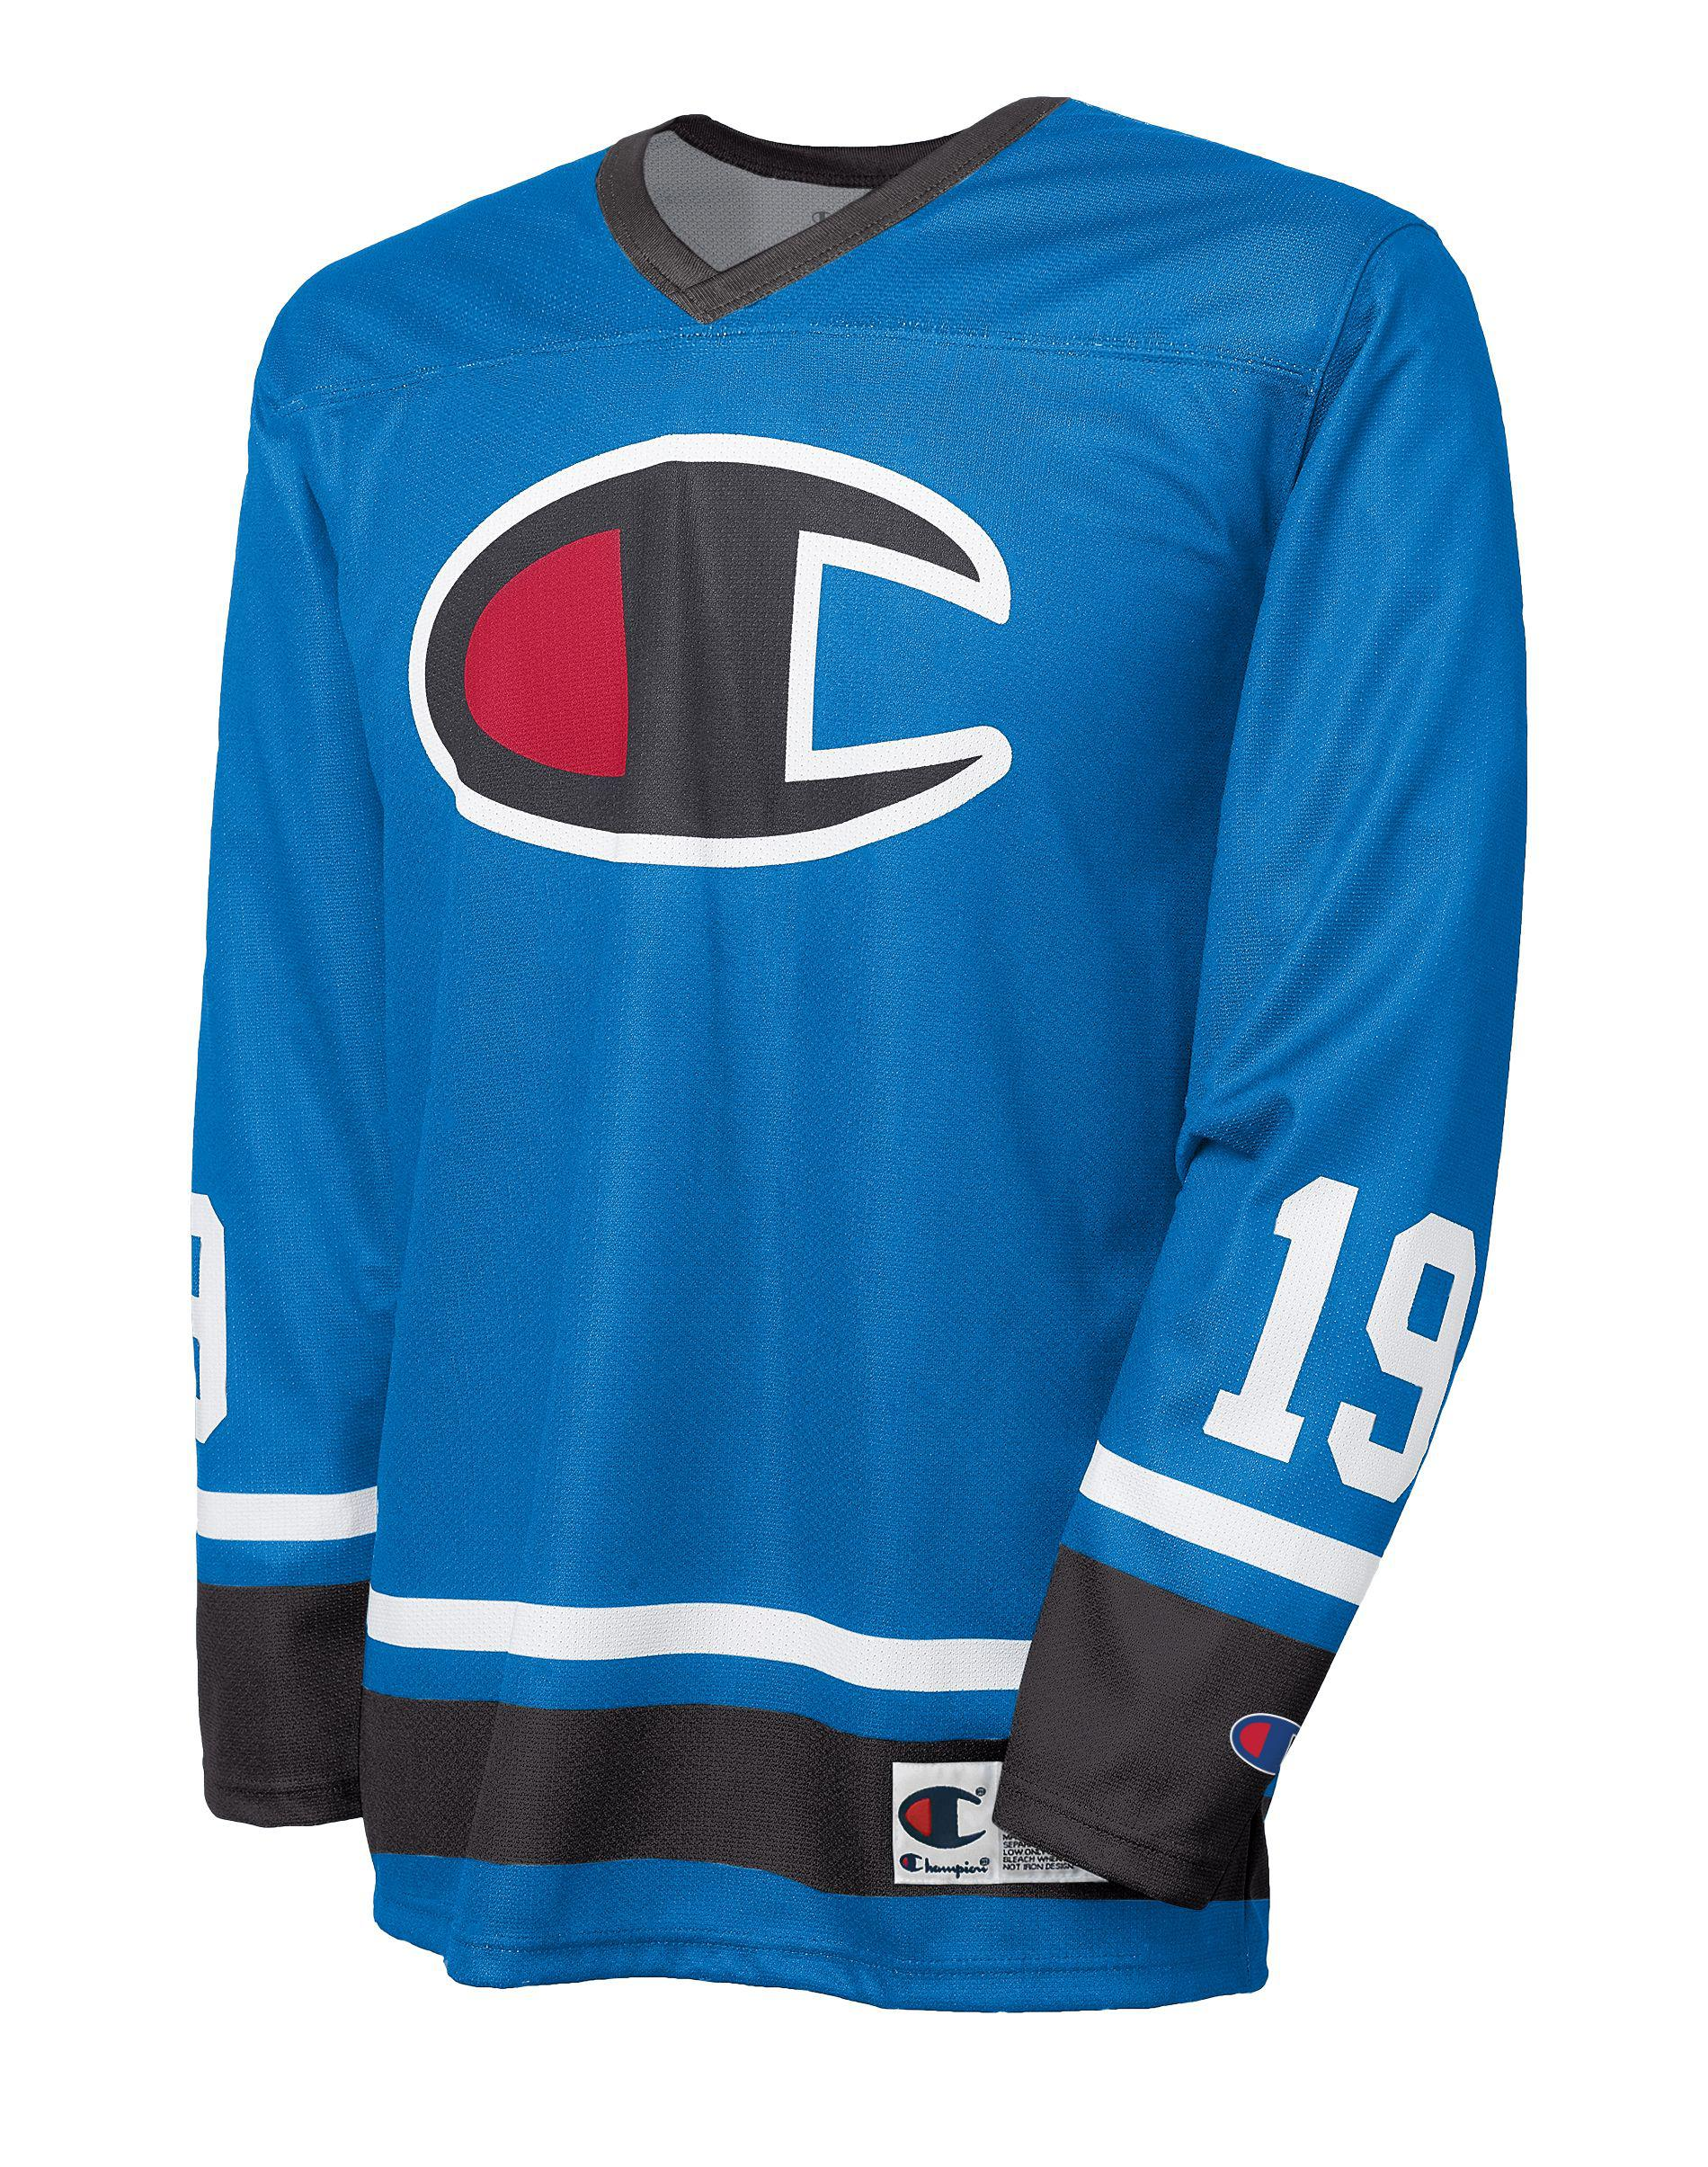 Lyst - Champion Life® Hockey Jersey in Blue for Men a8e4f7f82